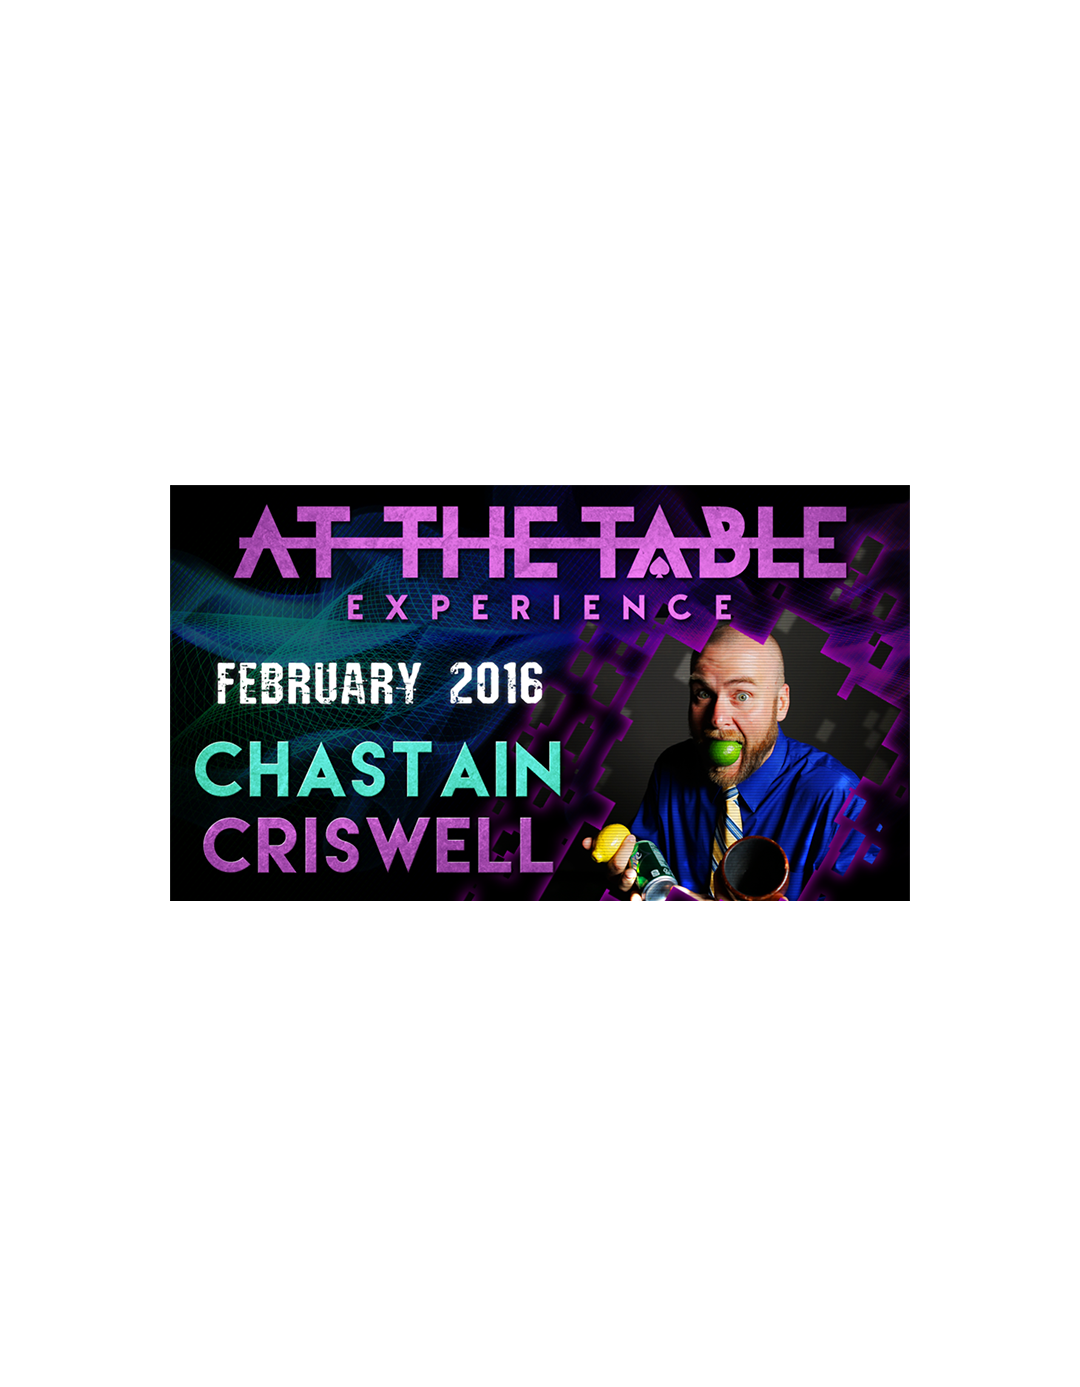 At the Table Live Lecture Chastain Criswell - 17 februarie 2016 - At the table lecture